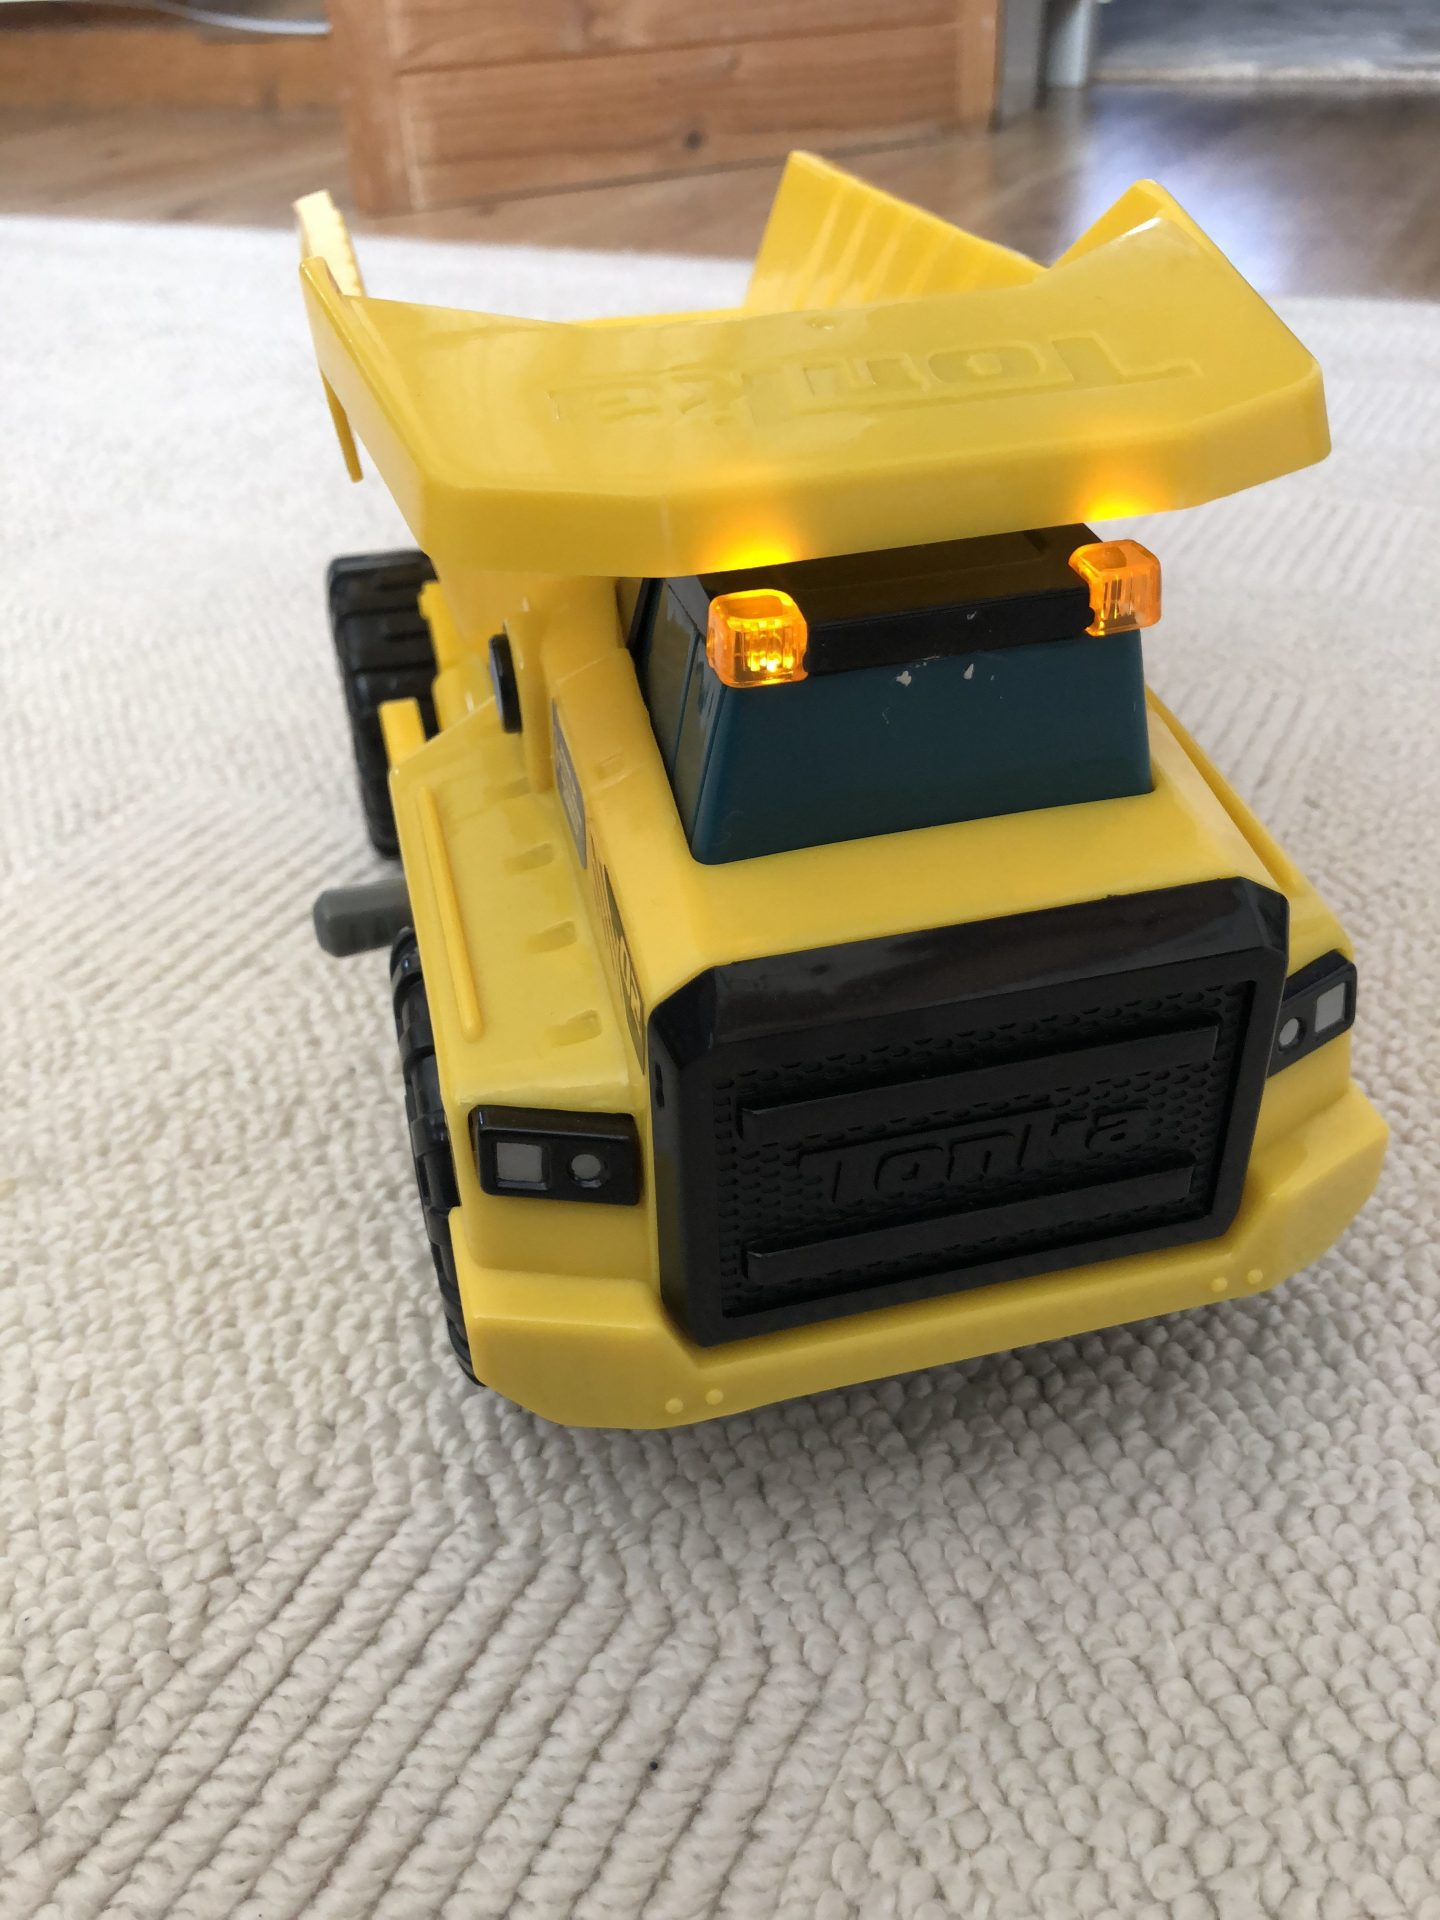 Tonka Power Movers Dump Truck Review